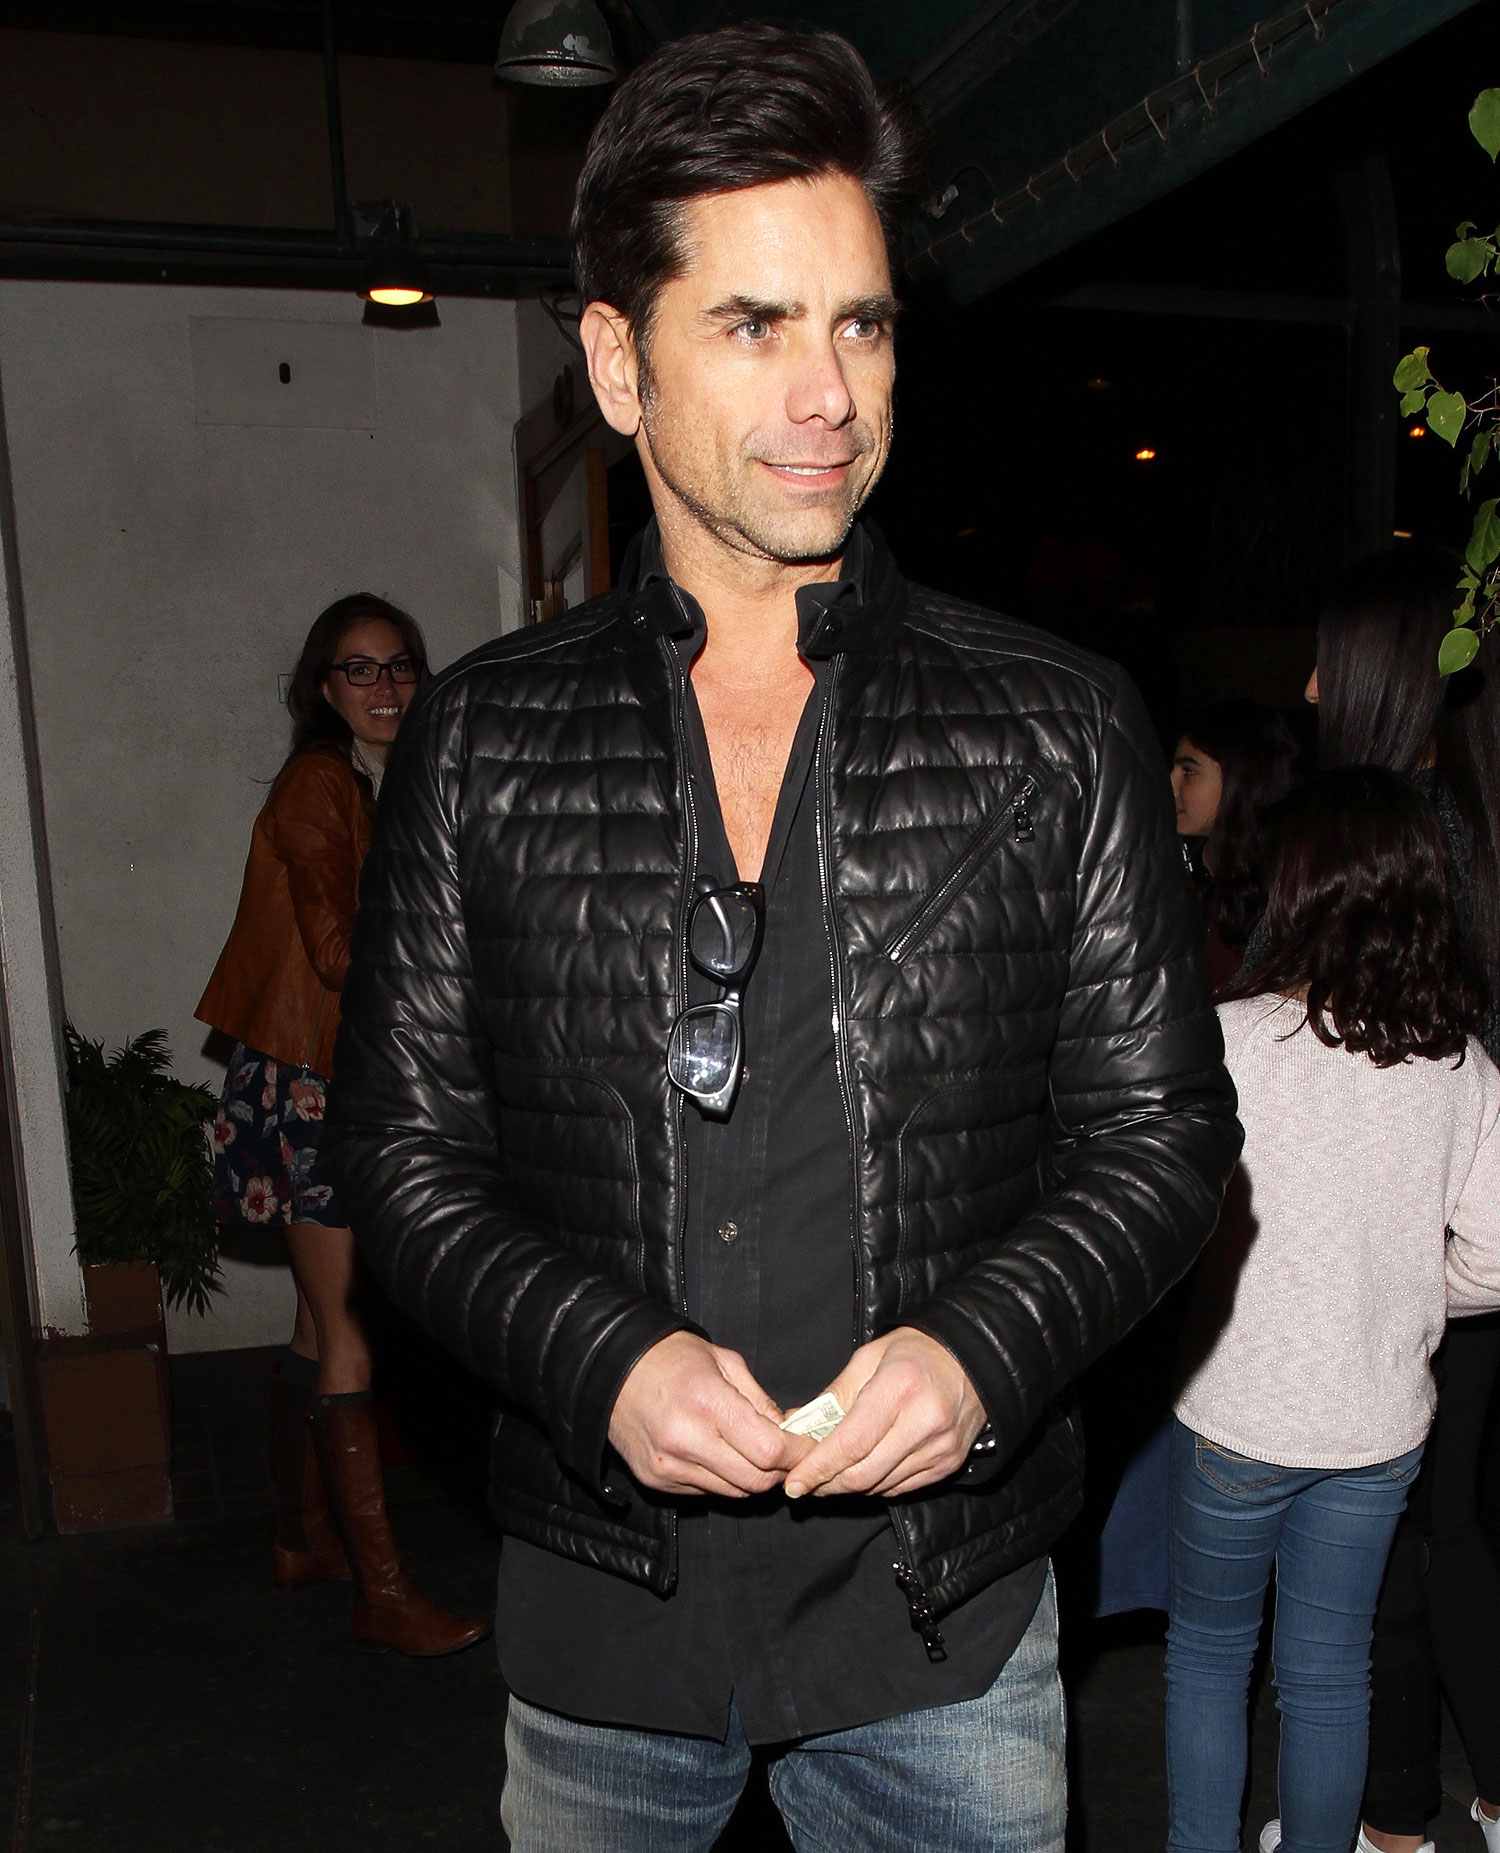 John Stamos and girlfriend Caitlin McHugh have a date night at Madeo